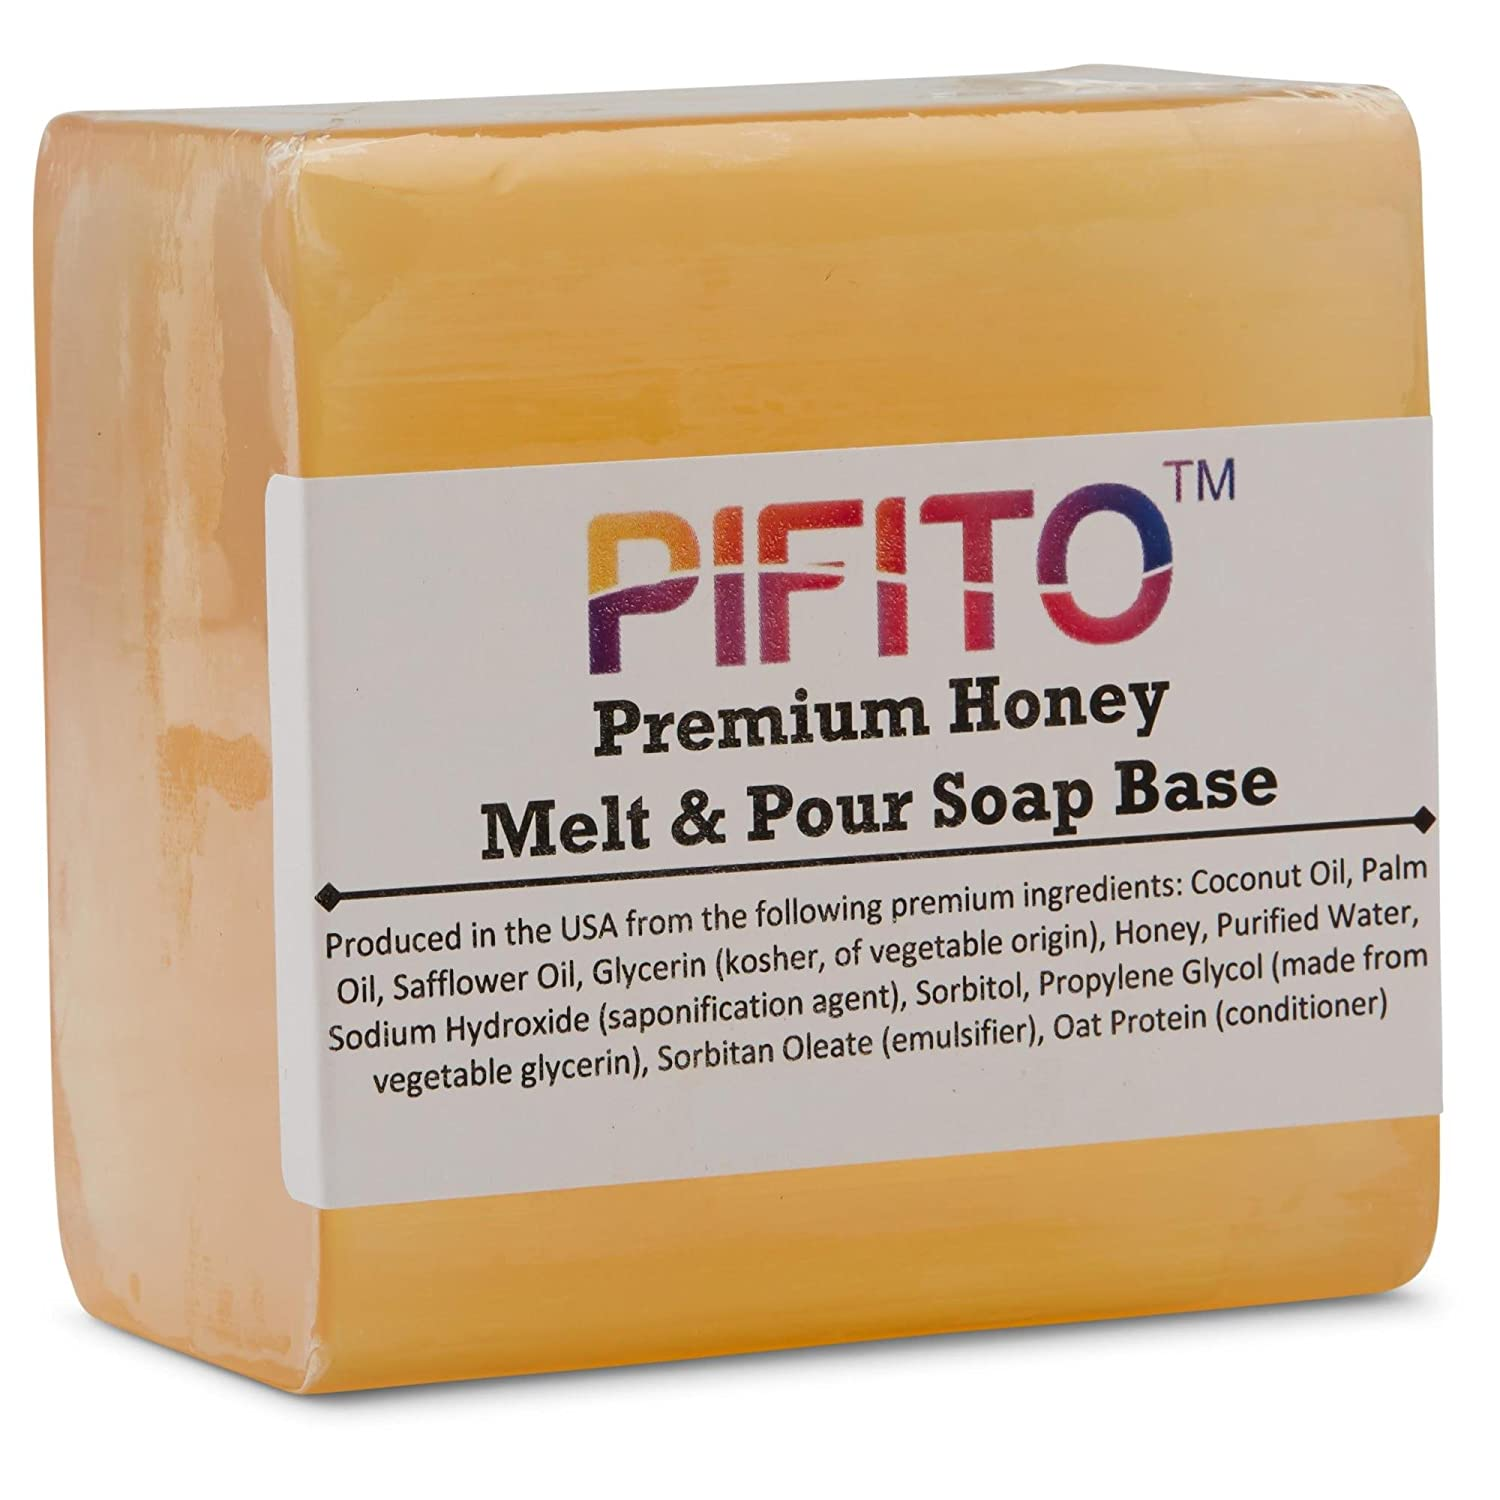 Pifito Premium Honey Melt and Pour Soap Base (3 lb) - Natural Vegetable Glycerin Soap Base - Excellent Hand Soap Making Supplies